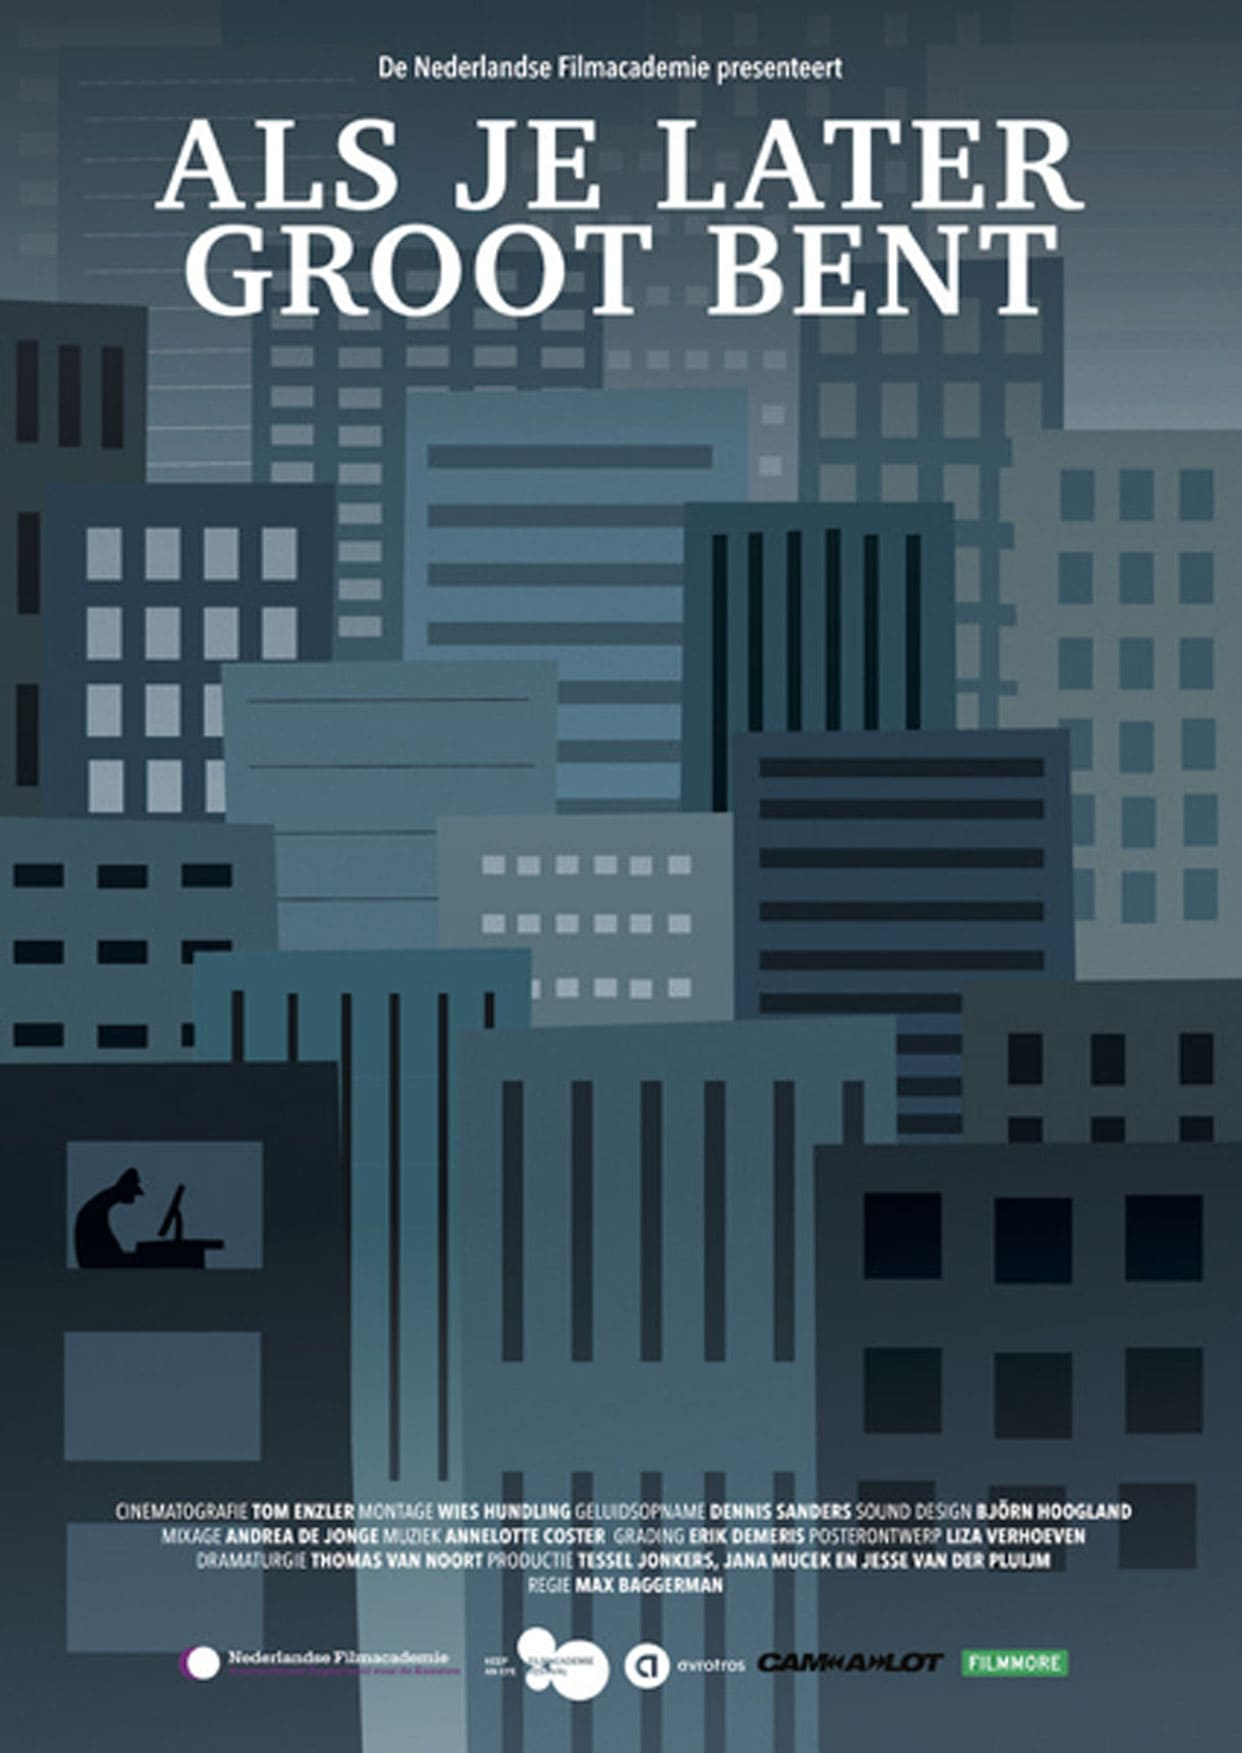 ALS-JE-LATER-GROOT-BENT - -WHEN-YOU-GROW-UP-Max-Baggermann